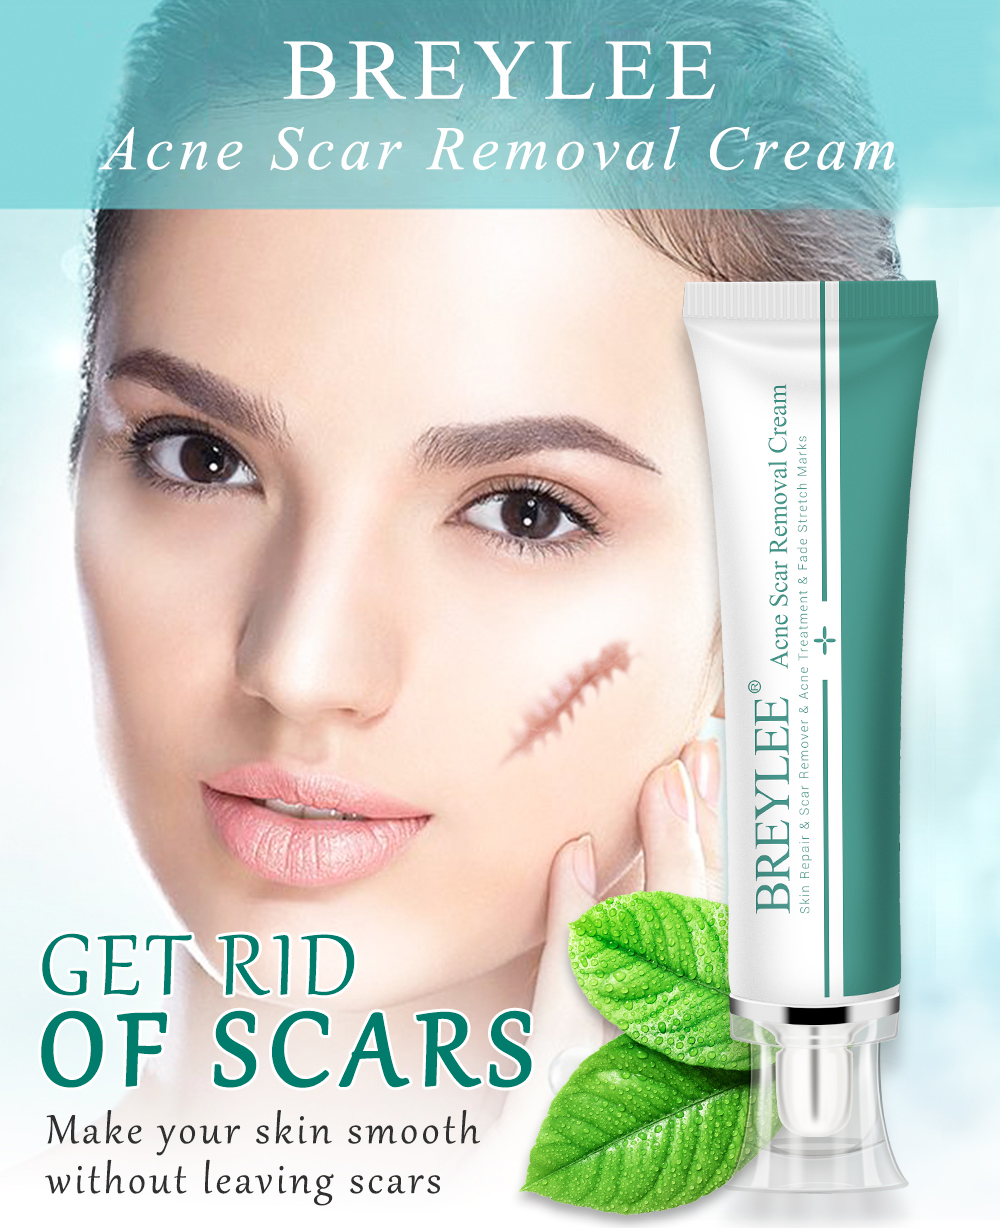 Breylee Acne Mark Scar Removal Cream Free Shipping Buy Acne Scar